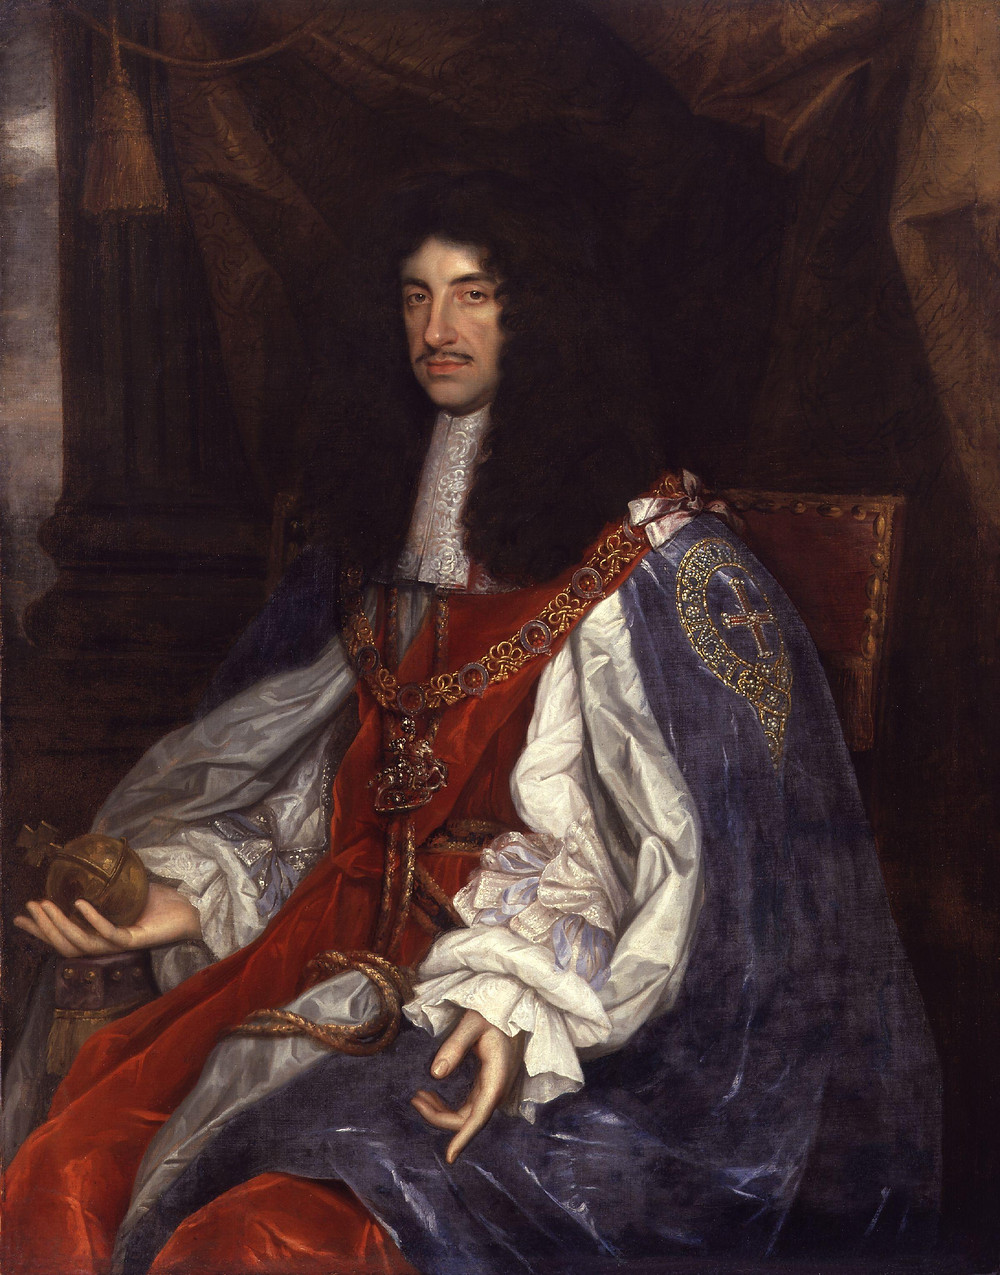 King Charles II by John Michael Wright. portrait painting of the third Stuart king of England